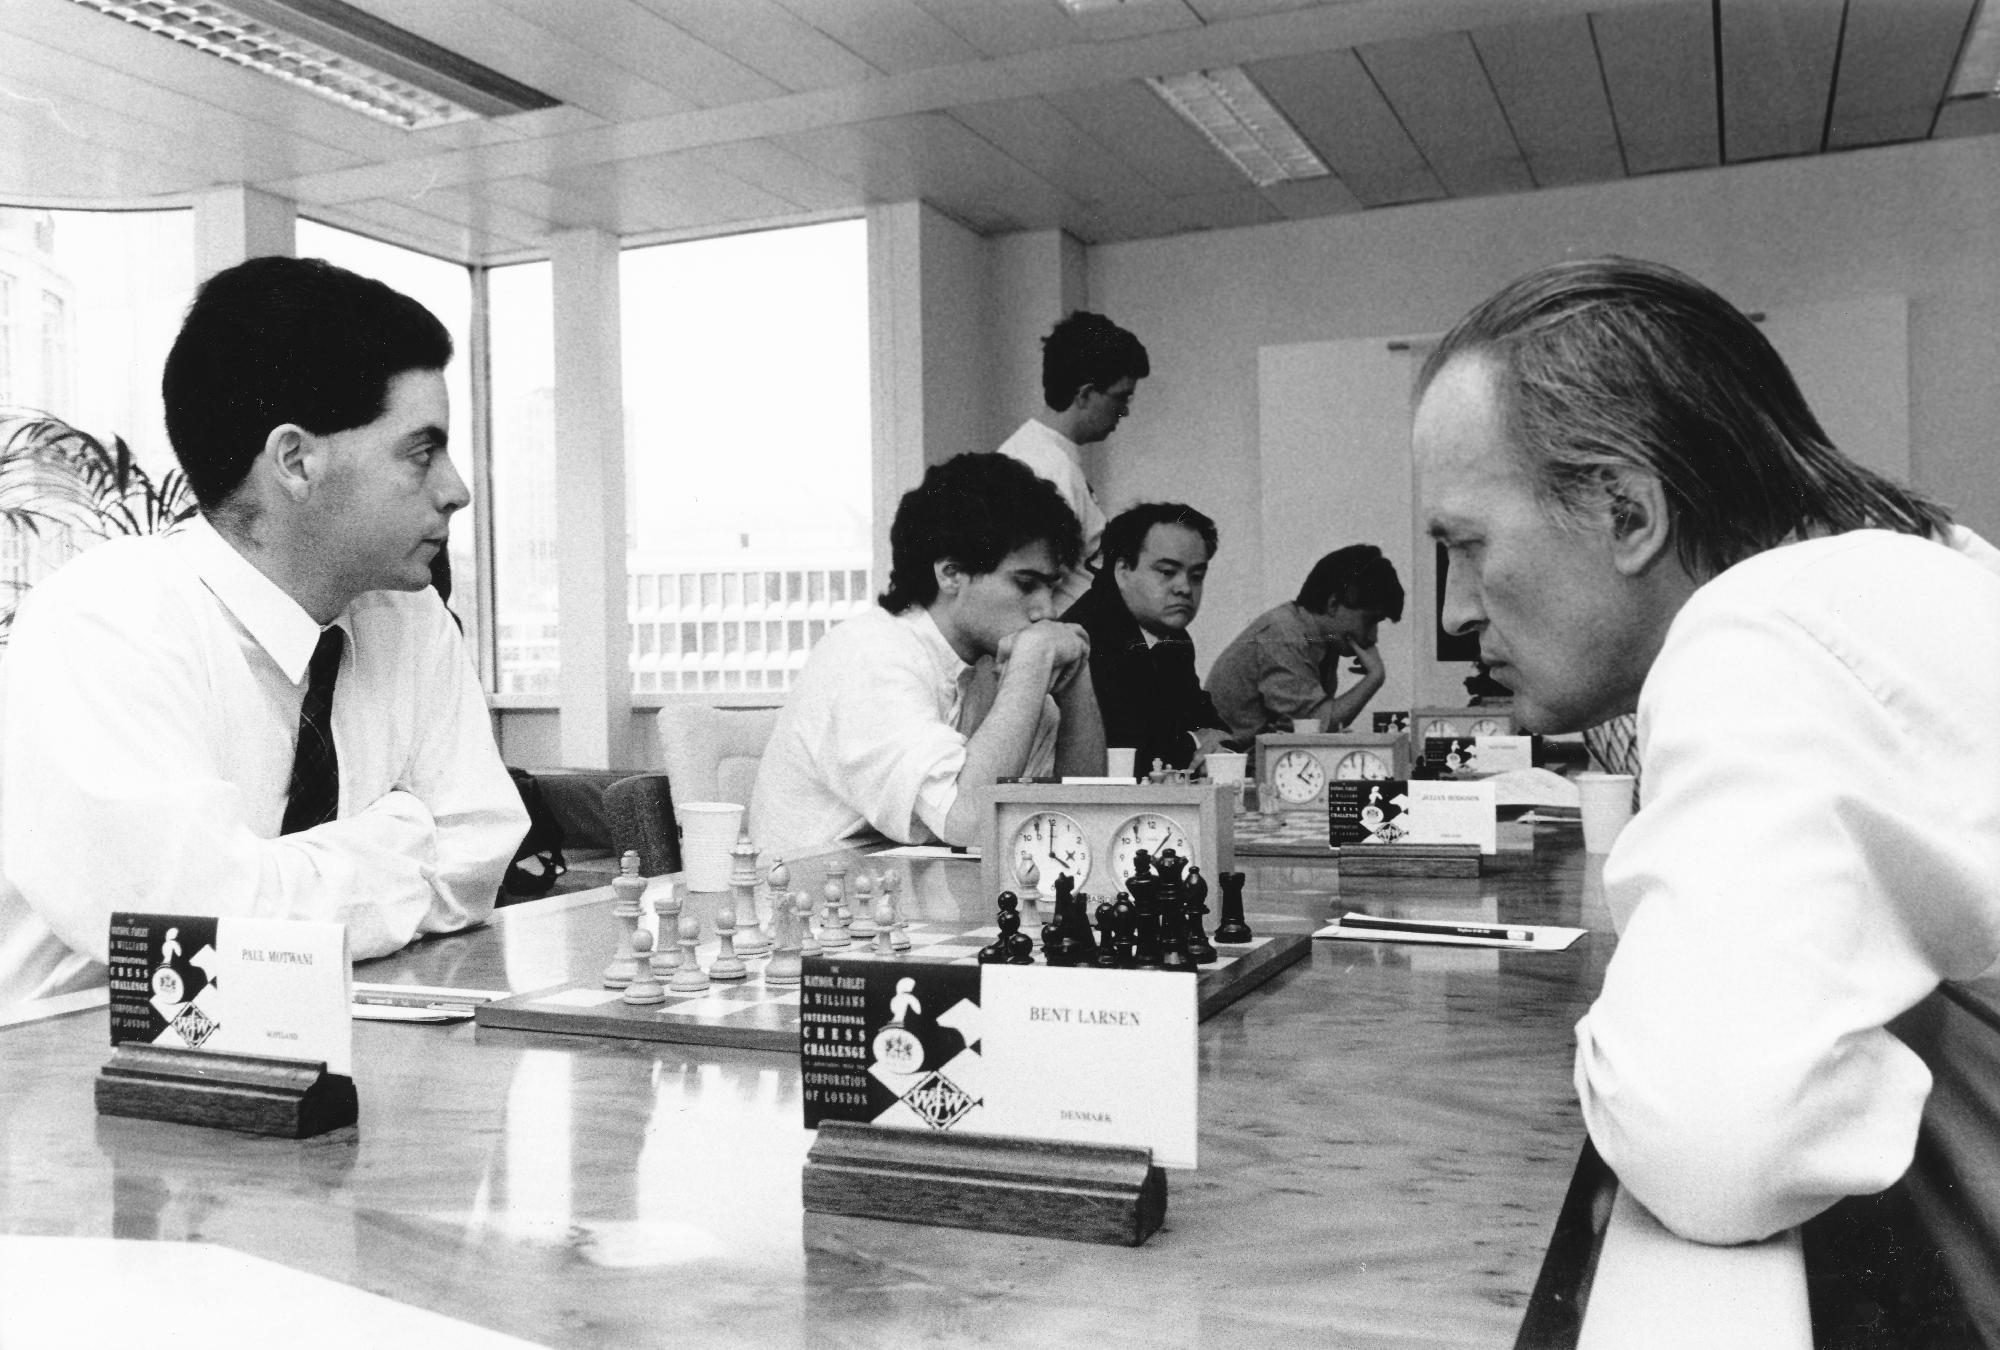 Paul Motwani plays Bent Larsen at the 1990 Watson, Farley and Williams International Chess Challenge. The game was a 3.Lb5 sicilian which was drawn